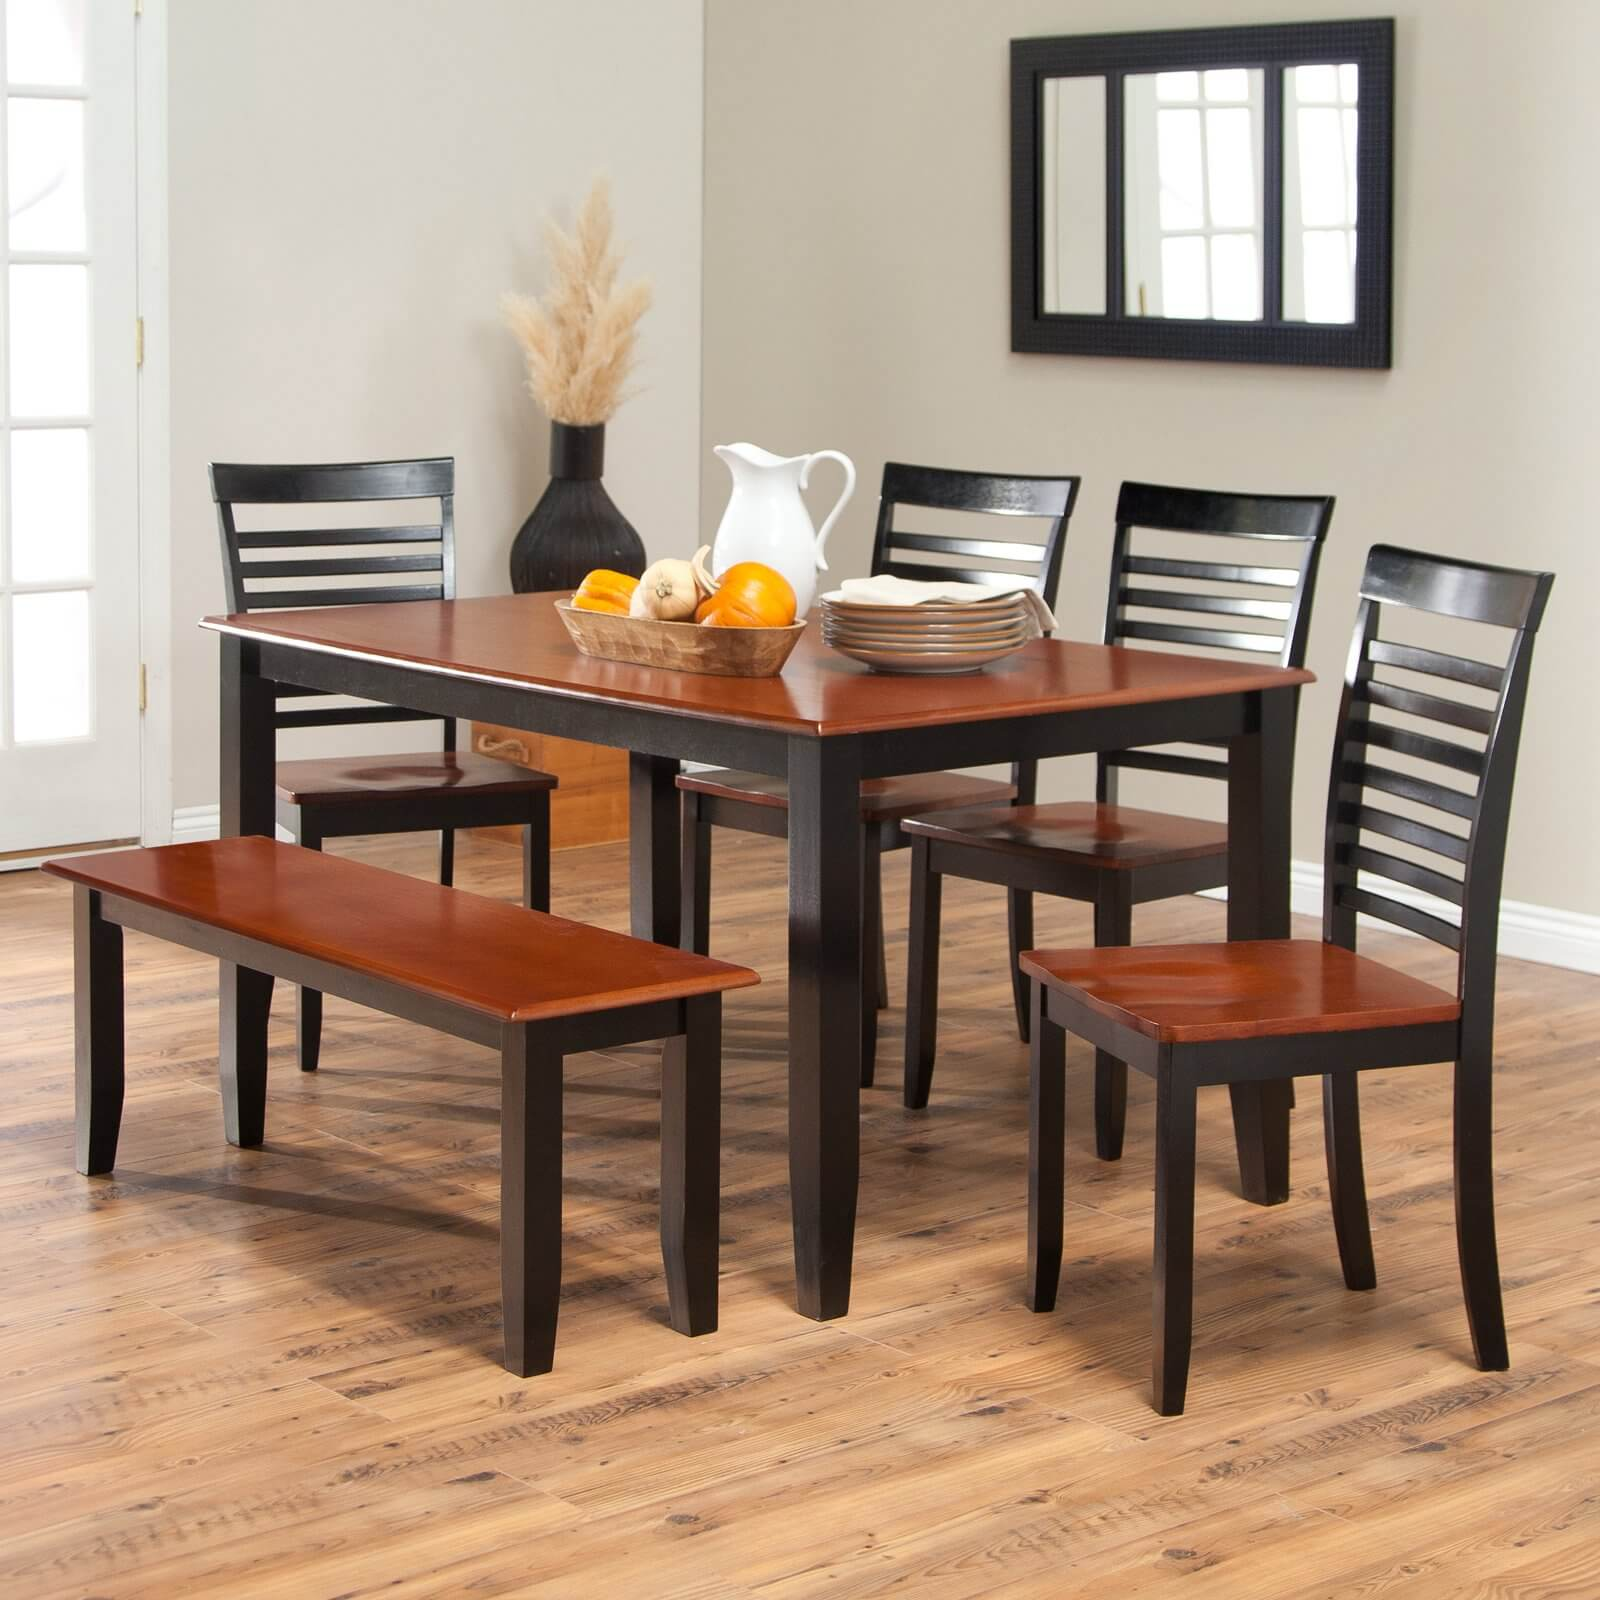 Dining Table With A Bench: 26 Big & Small Dining Room Sets With Bench Seating